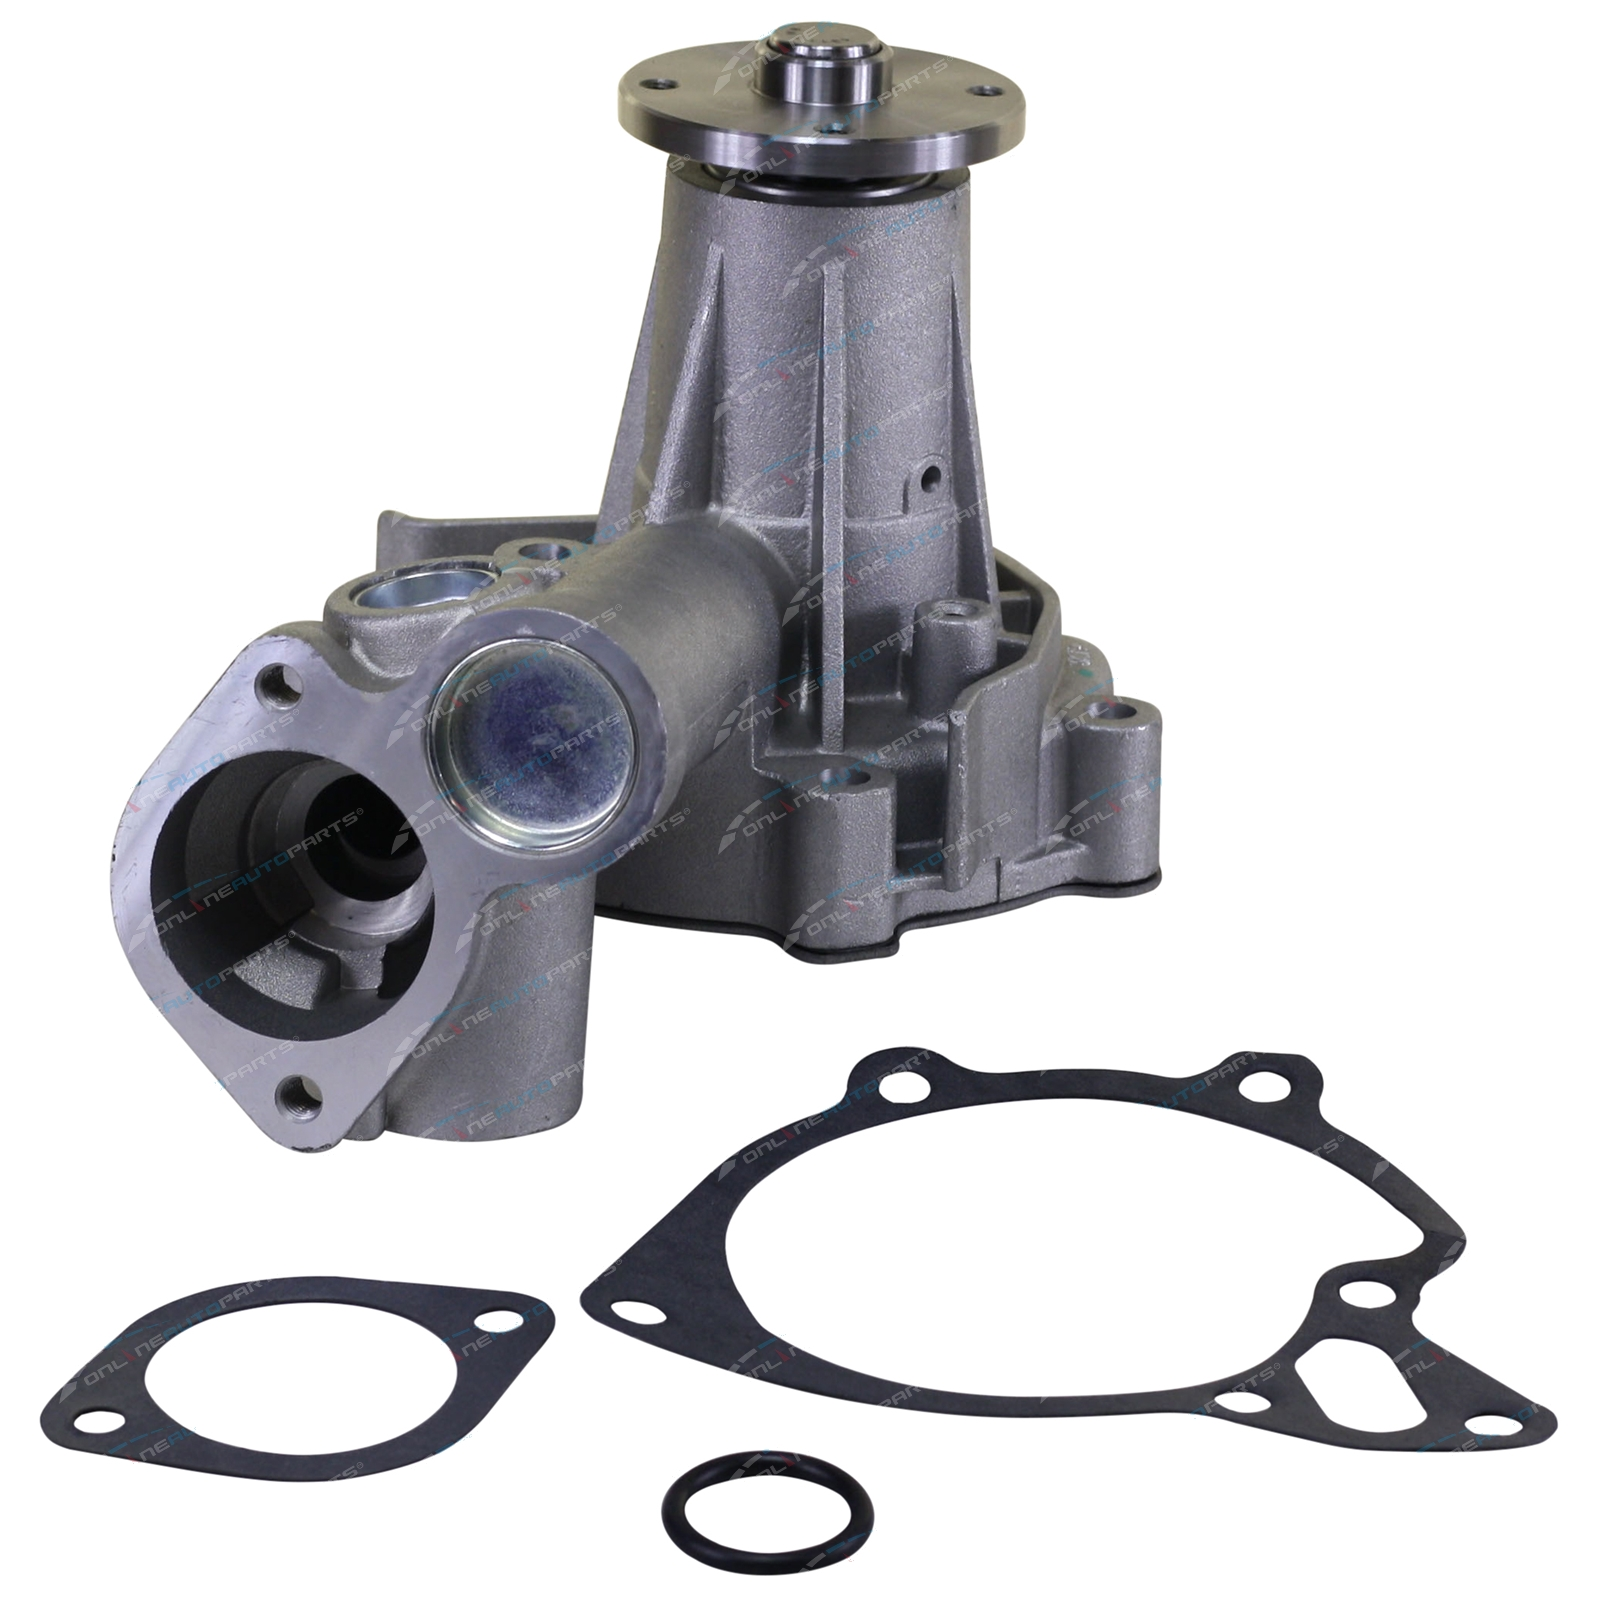 Water Pump Mitsubishi Triton Ute Diesel 25l 4d56 86 90 1986 1987 Click To Enlarge